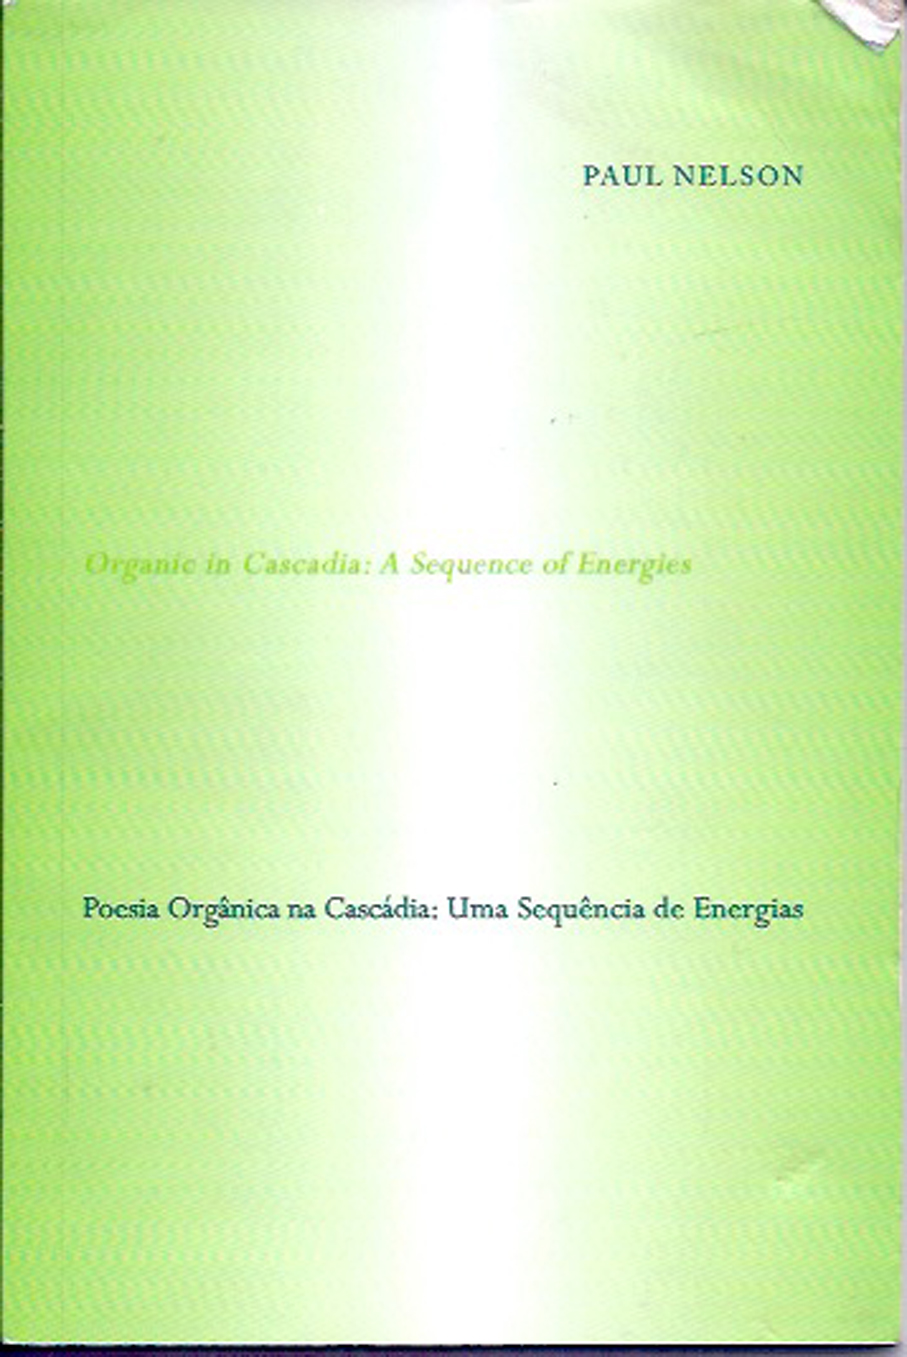 Organic in Cascadia: A Sequence of Energies